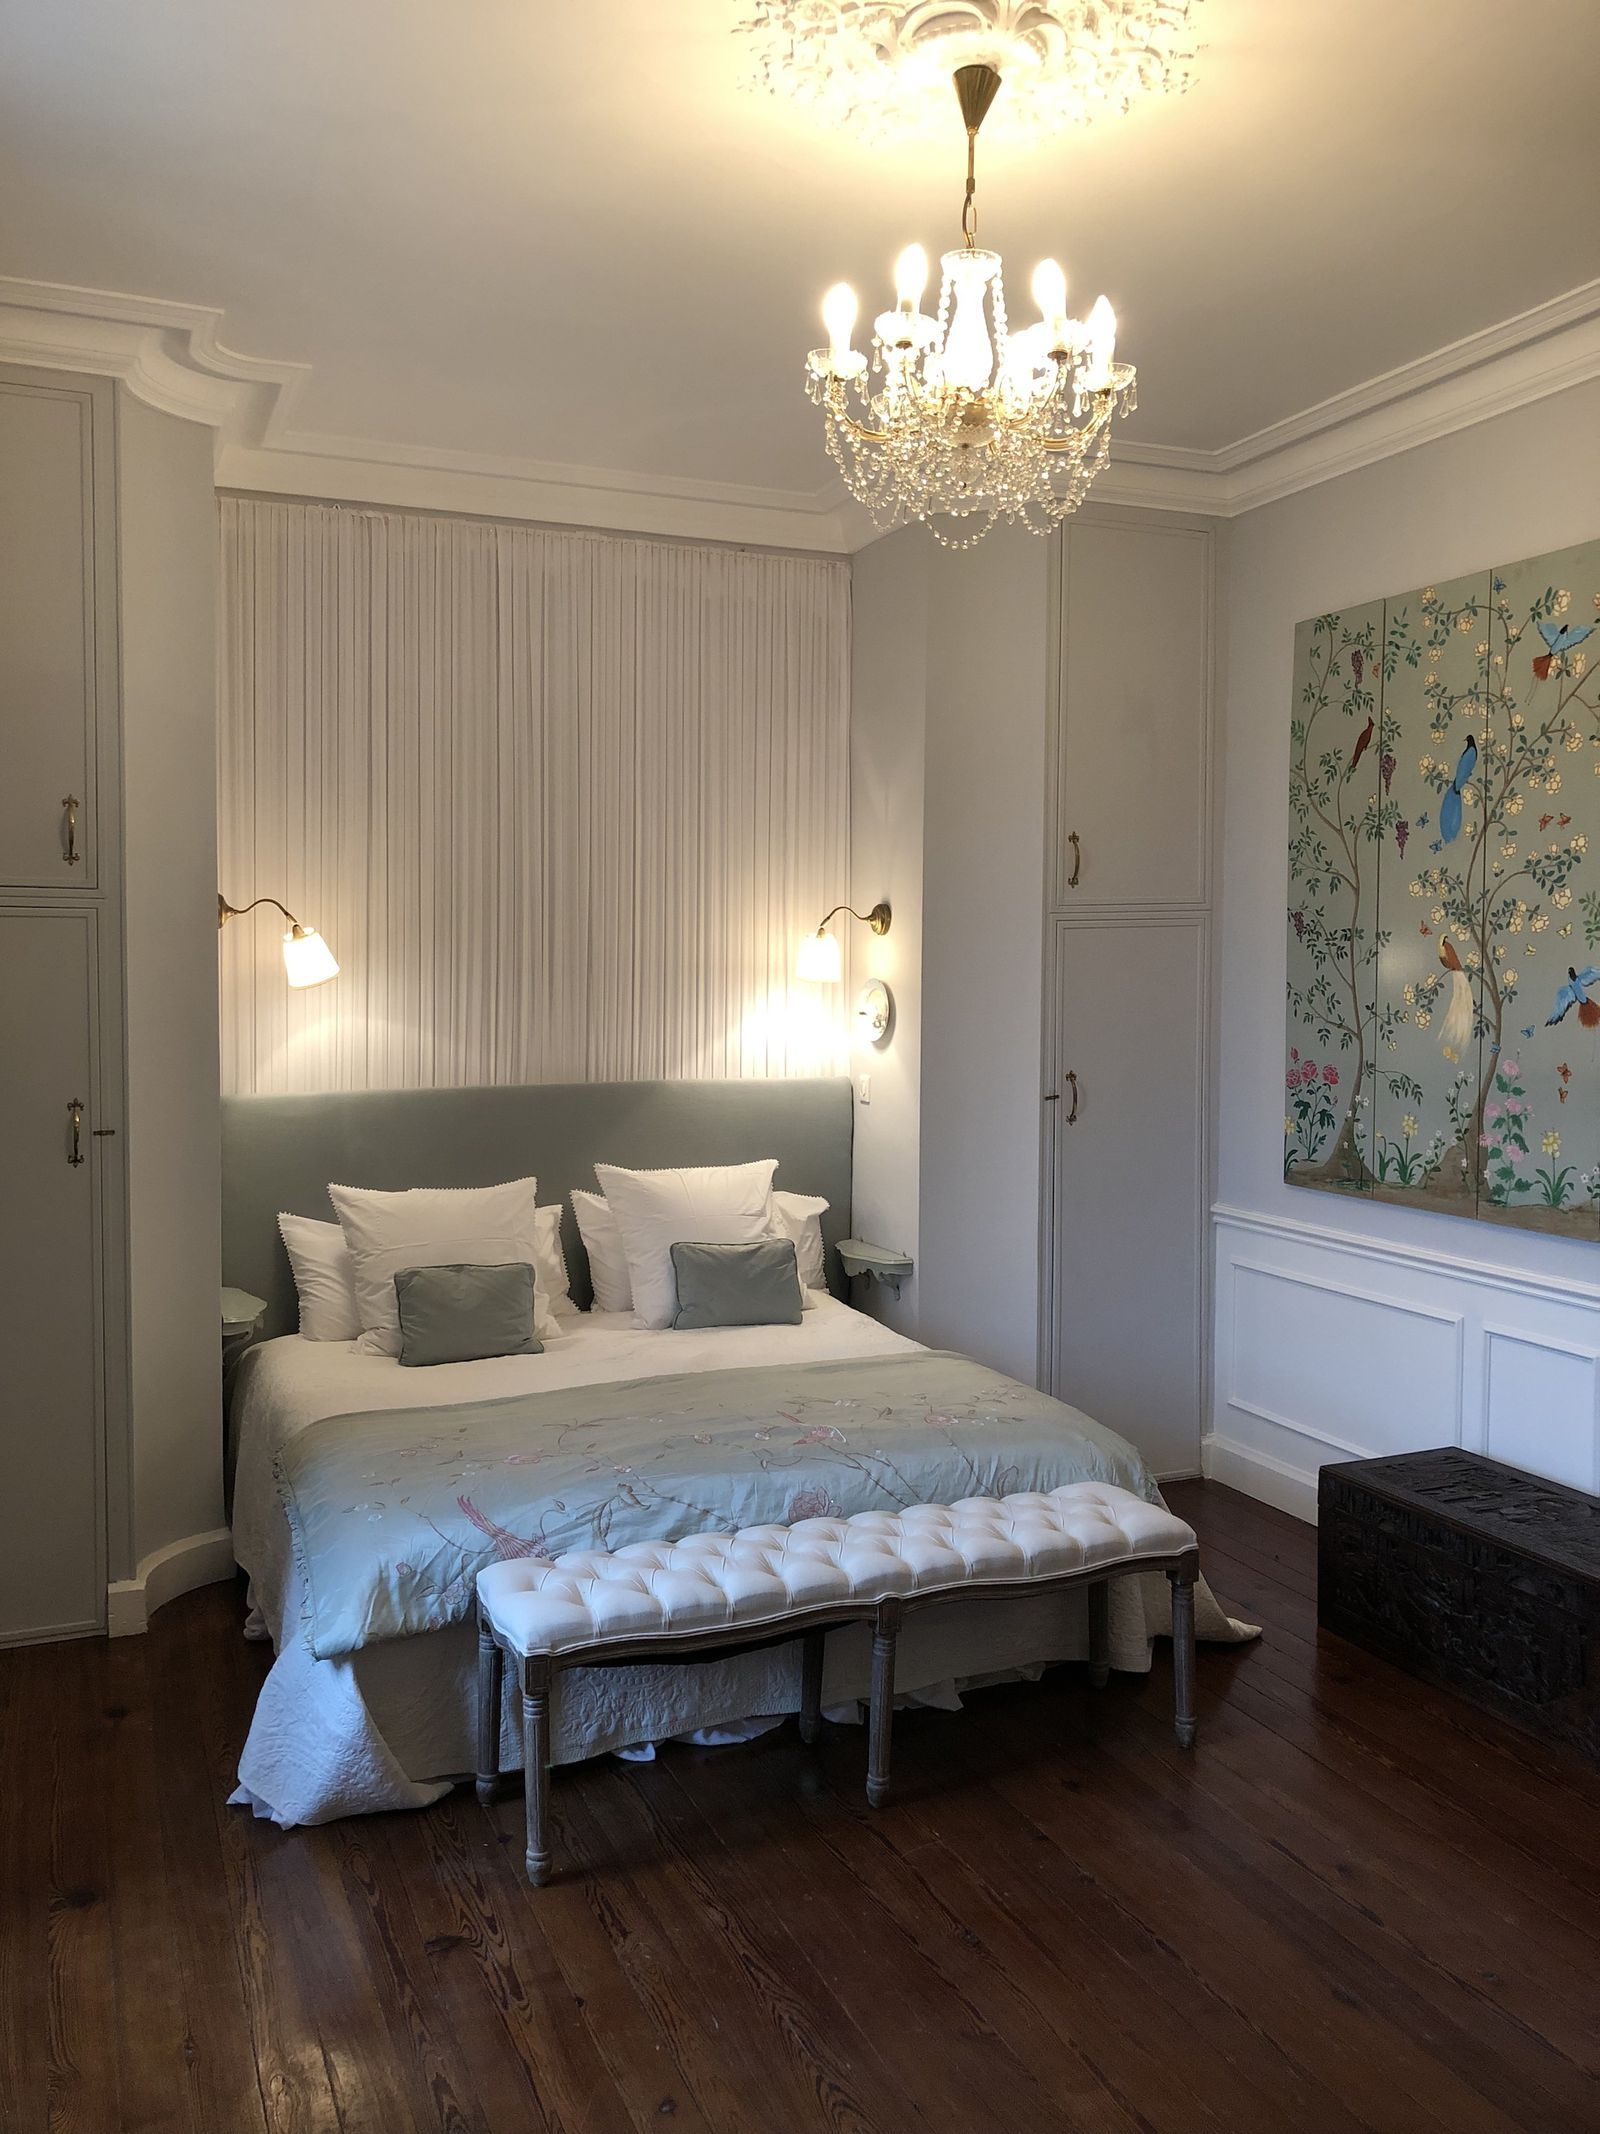 Escape To The Chateau Diy Inside Jayne And Steve Simmons Chateau De Thuries Chateaux Interiors Big Houses Inside Luxurious Bedrooms